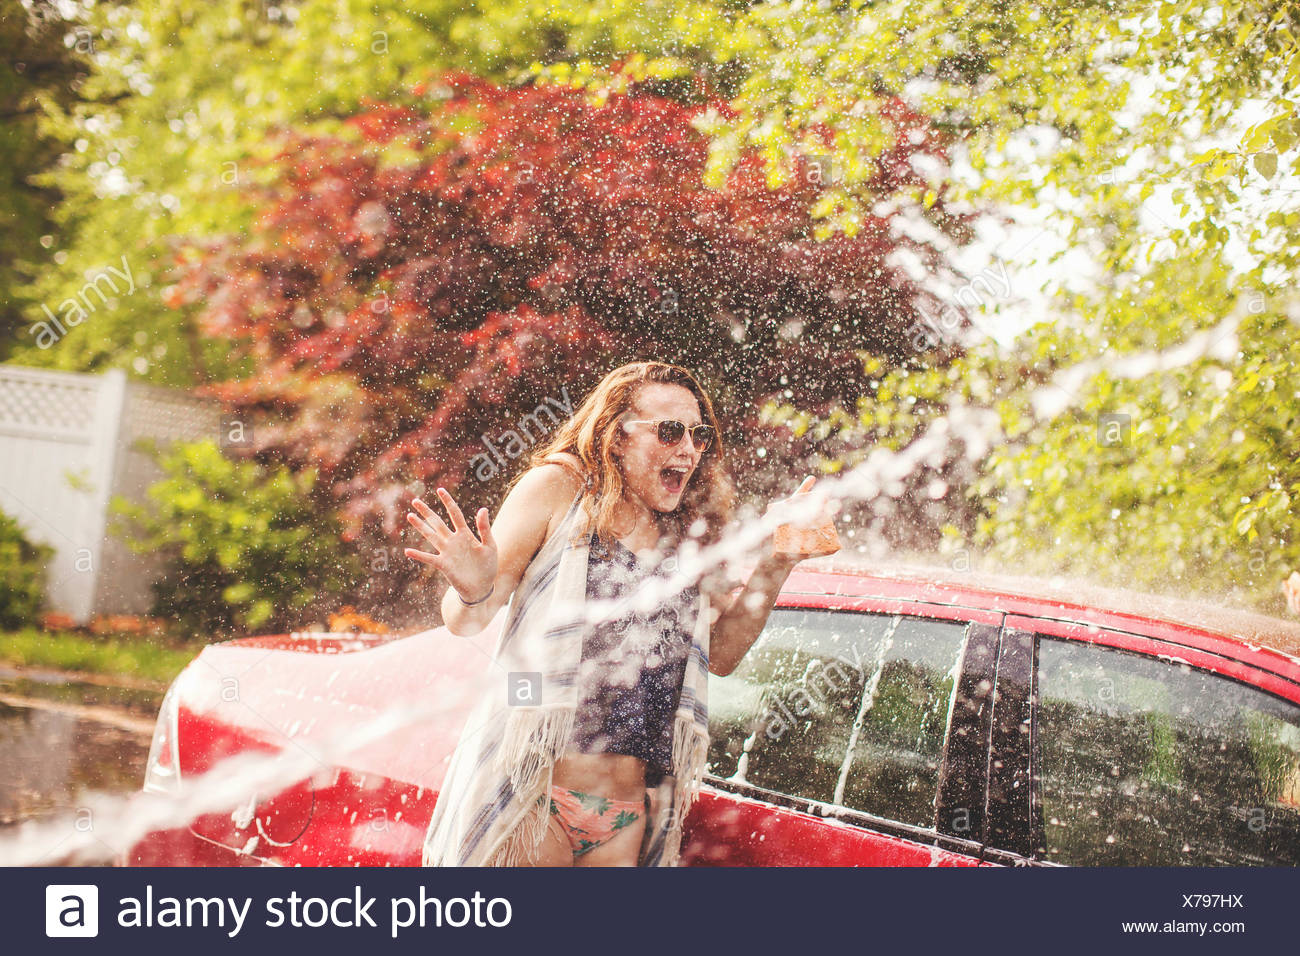 Young woman being sprayed with water - Stock Image